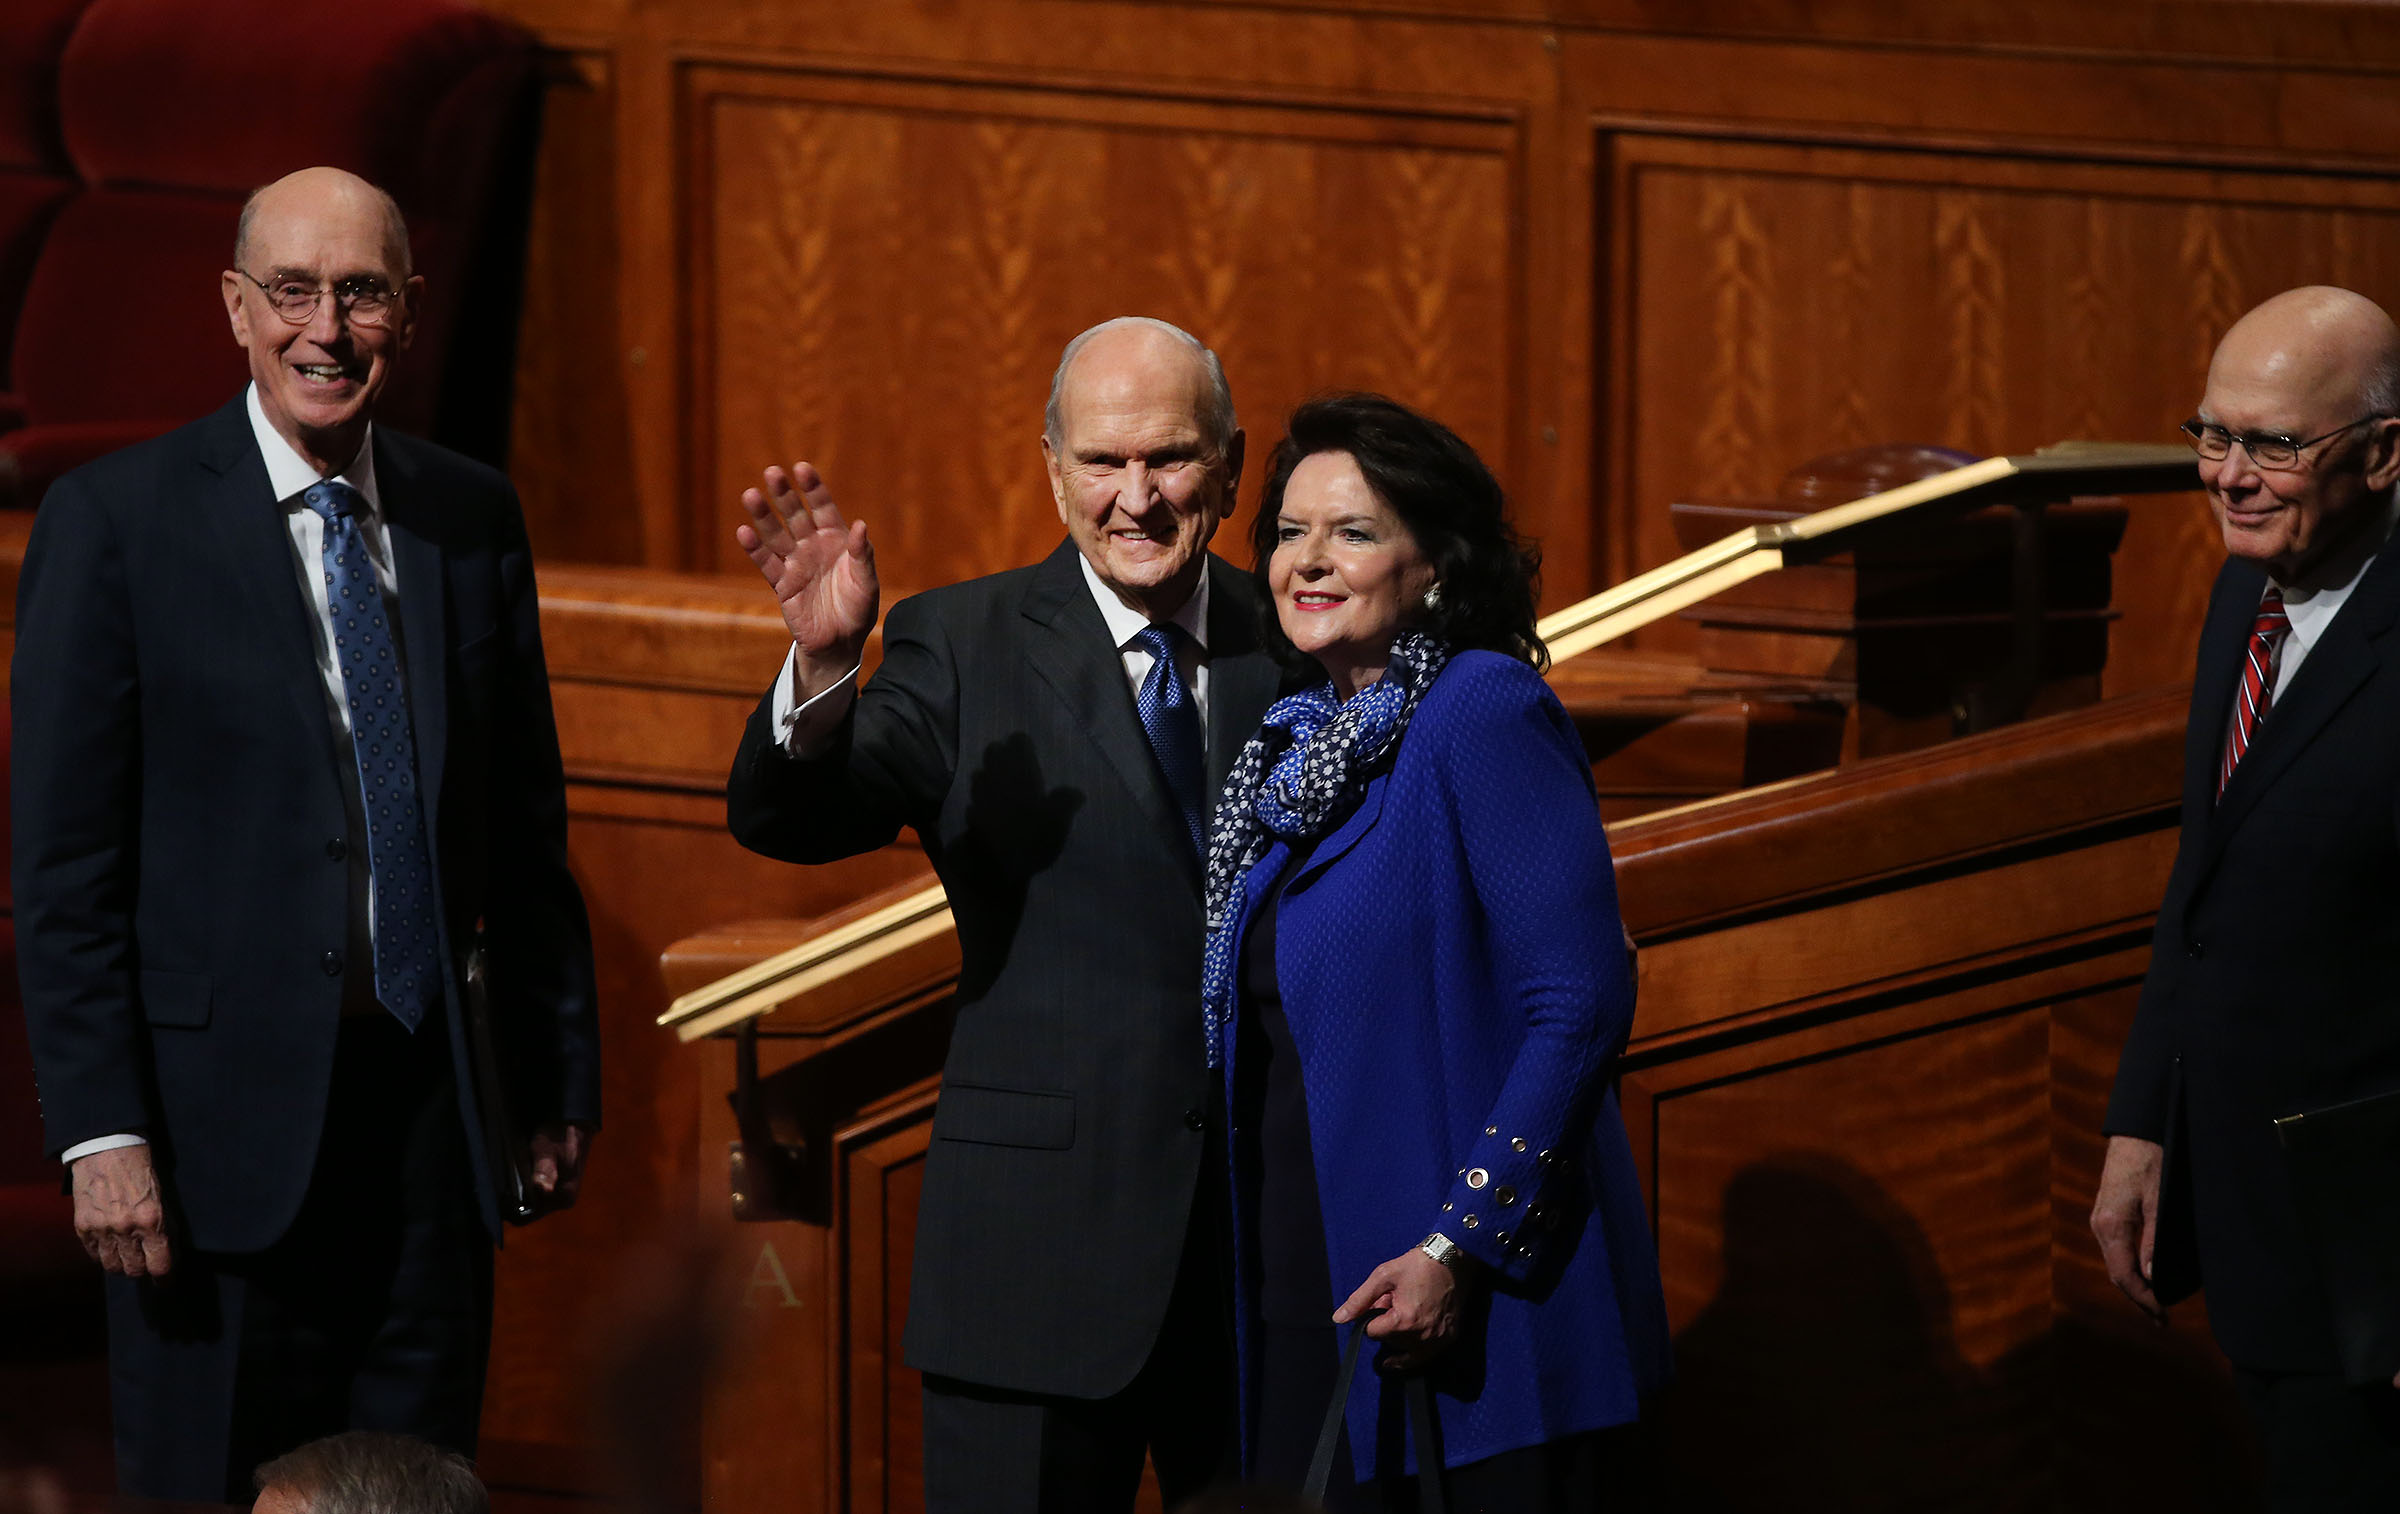 President Henry B. Eyring, left, Second Counselor in the First Presidency, President Russell M. Nelson and his wife, Wendy, and President Dallin H.Oaks, First Counselor in the First Presidency, wave to the audience after the general women's session of the 188th Semiannual General Conference of The Church of Jesus Christ of Latter-day Saints held in the Conference Center in downtown Salt Lake City on Oct. 6, 2018.